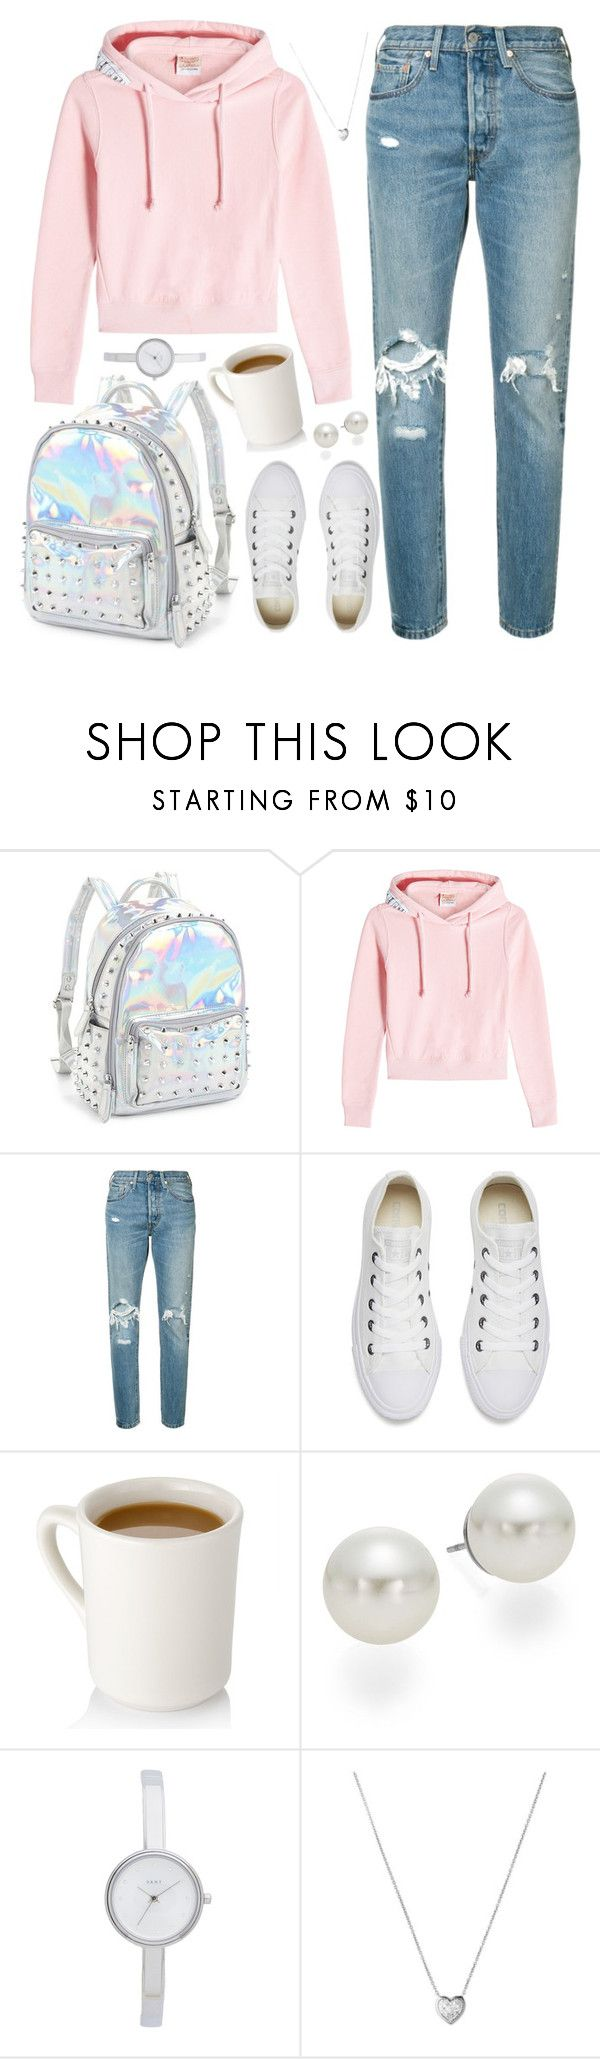 """Hail Rain or Sunshine"" by tegan-nottle ❤ liked on Polyvore featuring Bari Lynn, Vetements, Levi's, Converse, AK Anne Klein, DKNY, Links of London, trend, women and fashionset"